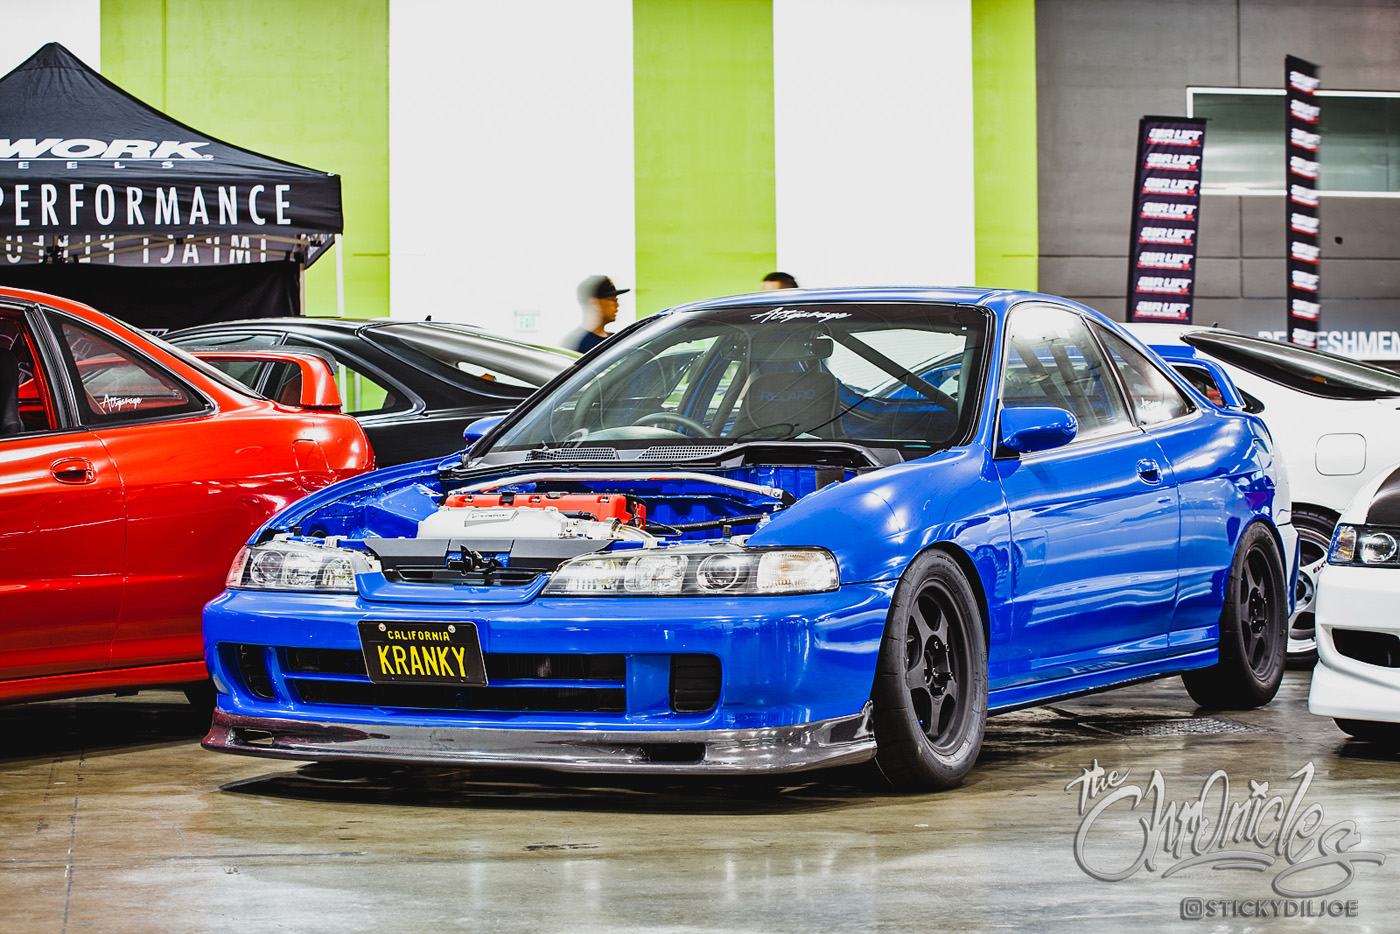 Wekfest San Jose 2016 Coverage…Part 1…